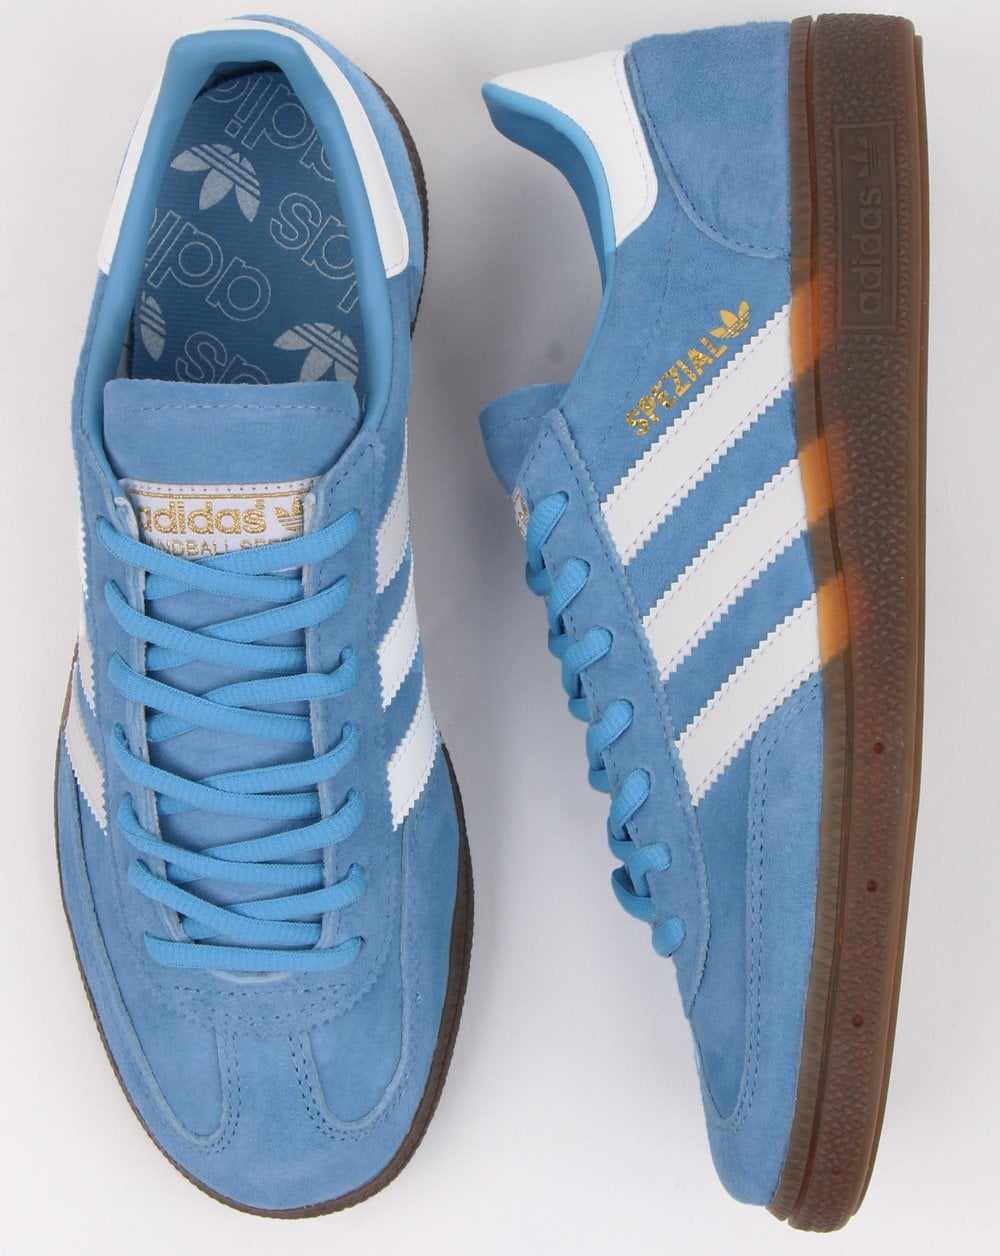 save off eabba 7ca33 adidas Trainers Adidas Spezial Trainers Sky Blue white